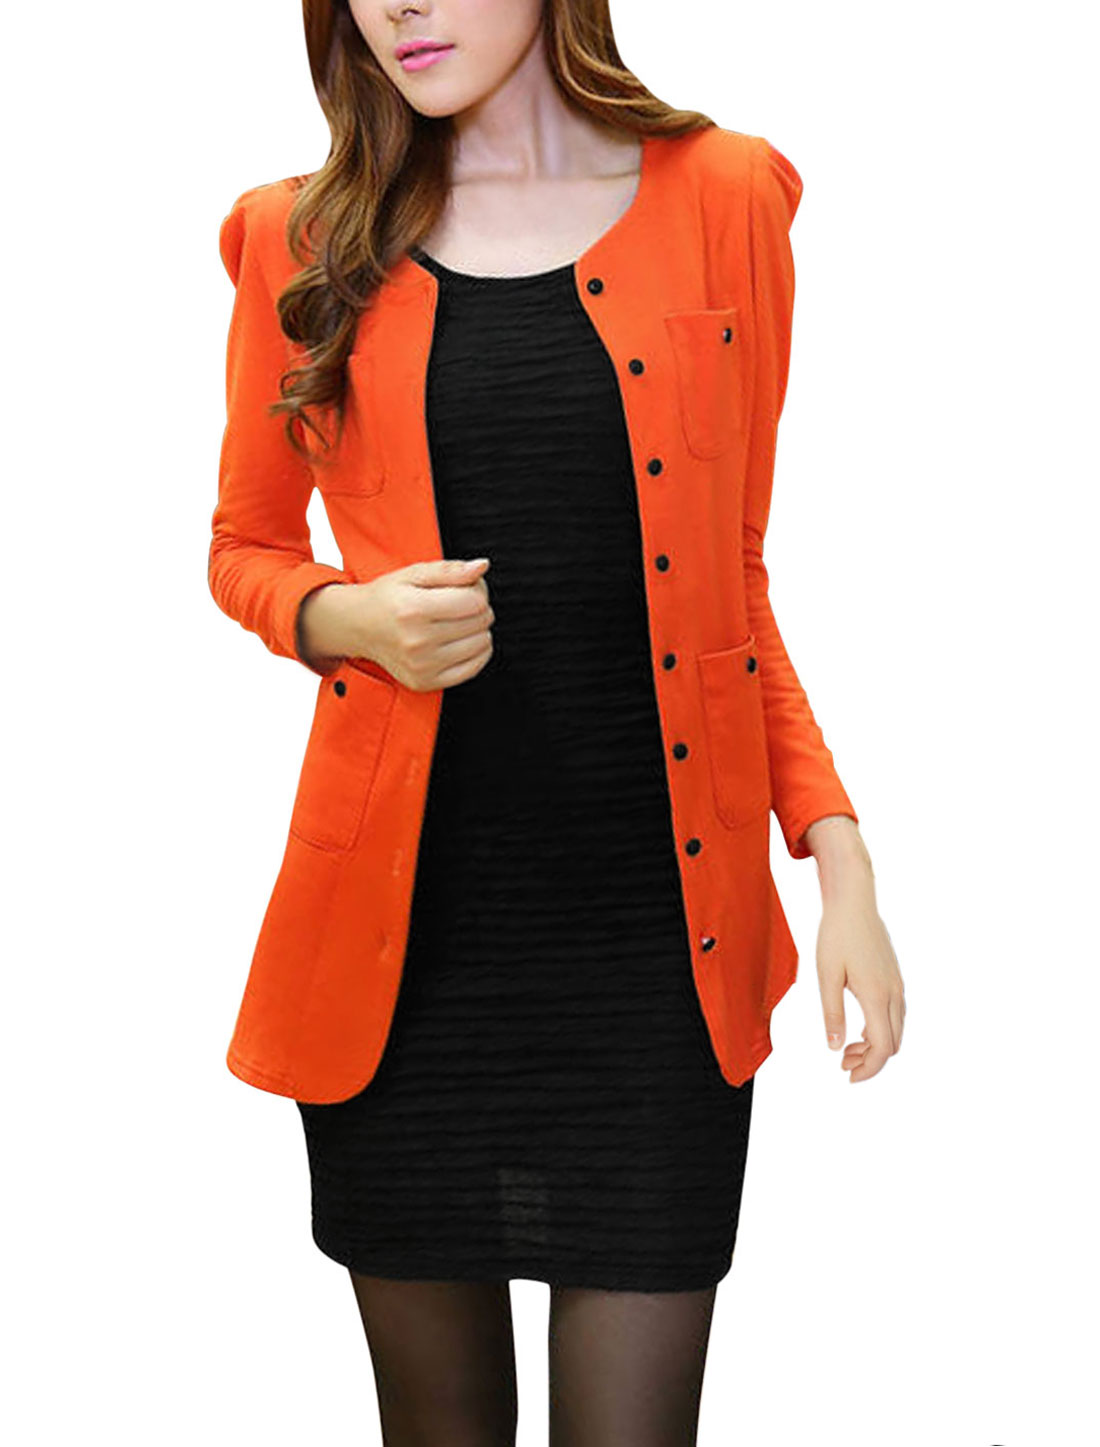 Lady Long Sleeve Two Chest Pockets Padded Shoulder Cardigan Orange M